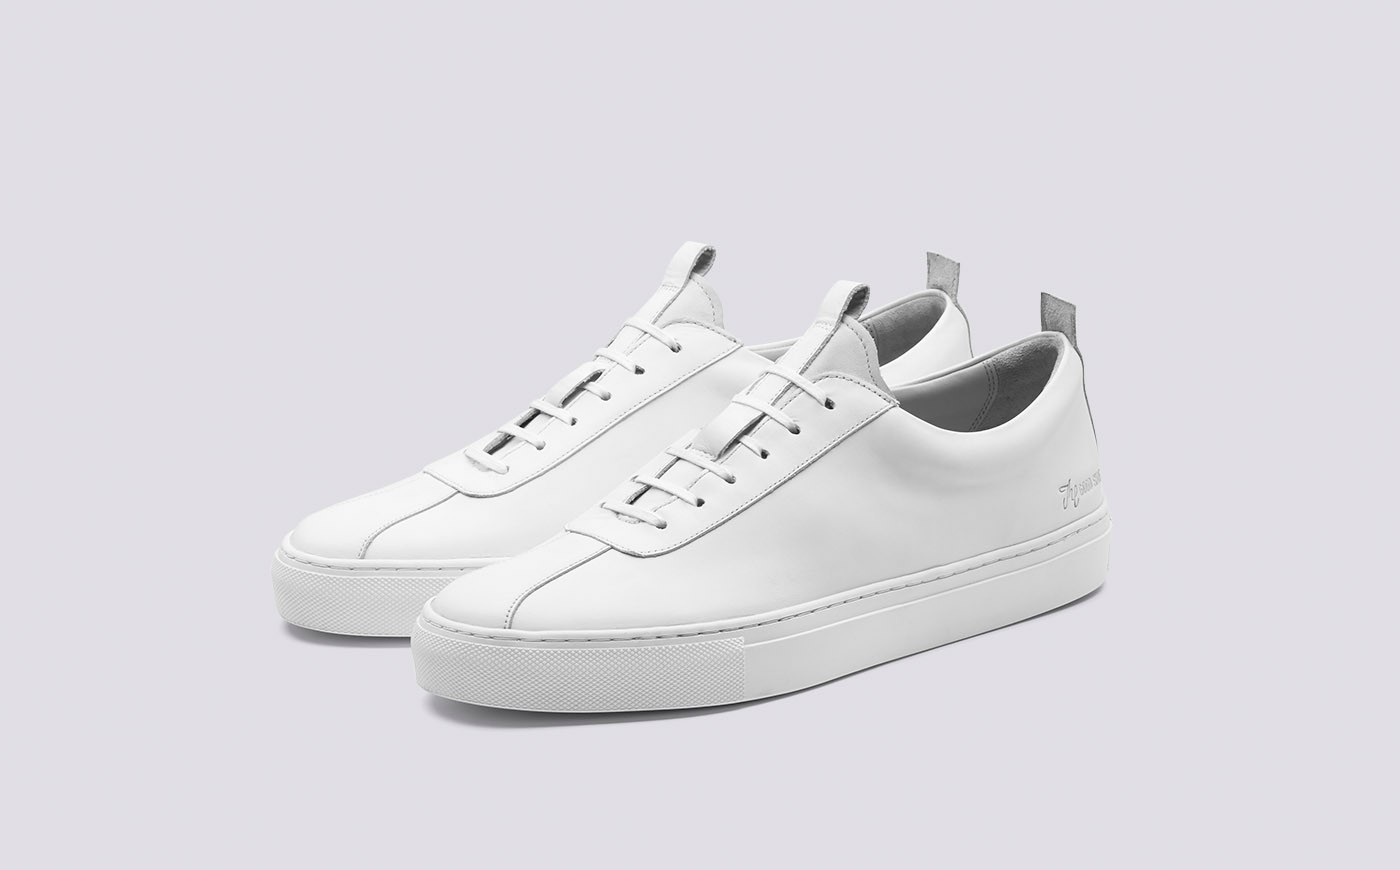 Grenson White Sneaker 1 Men's